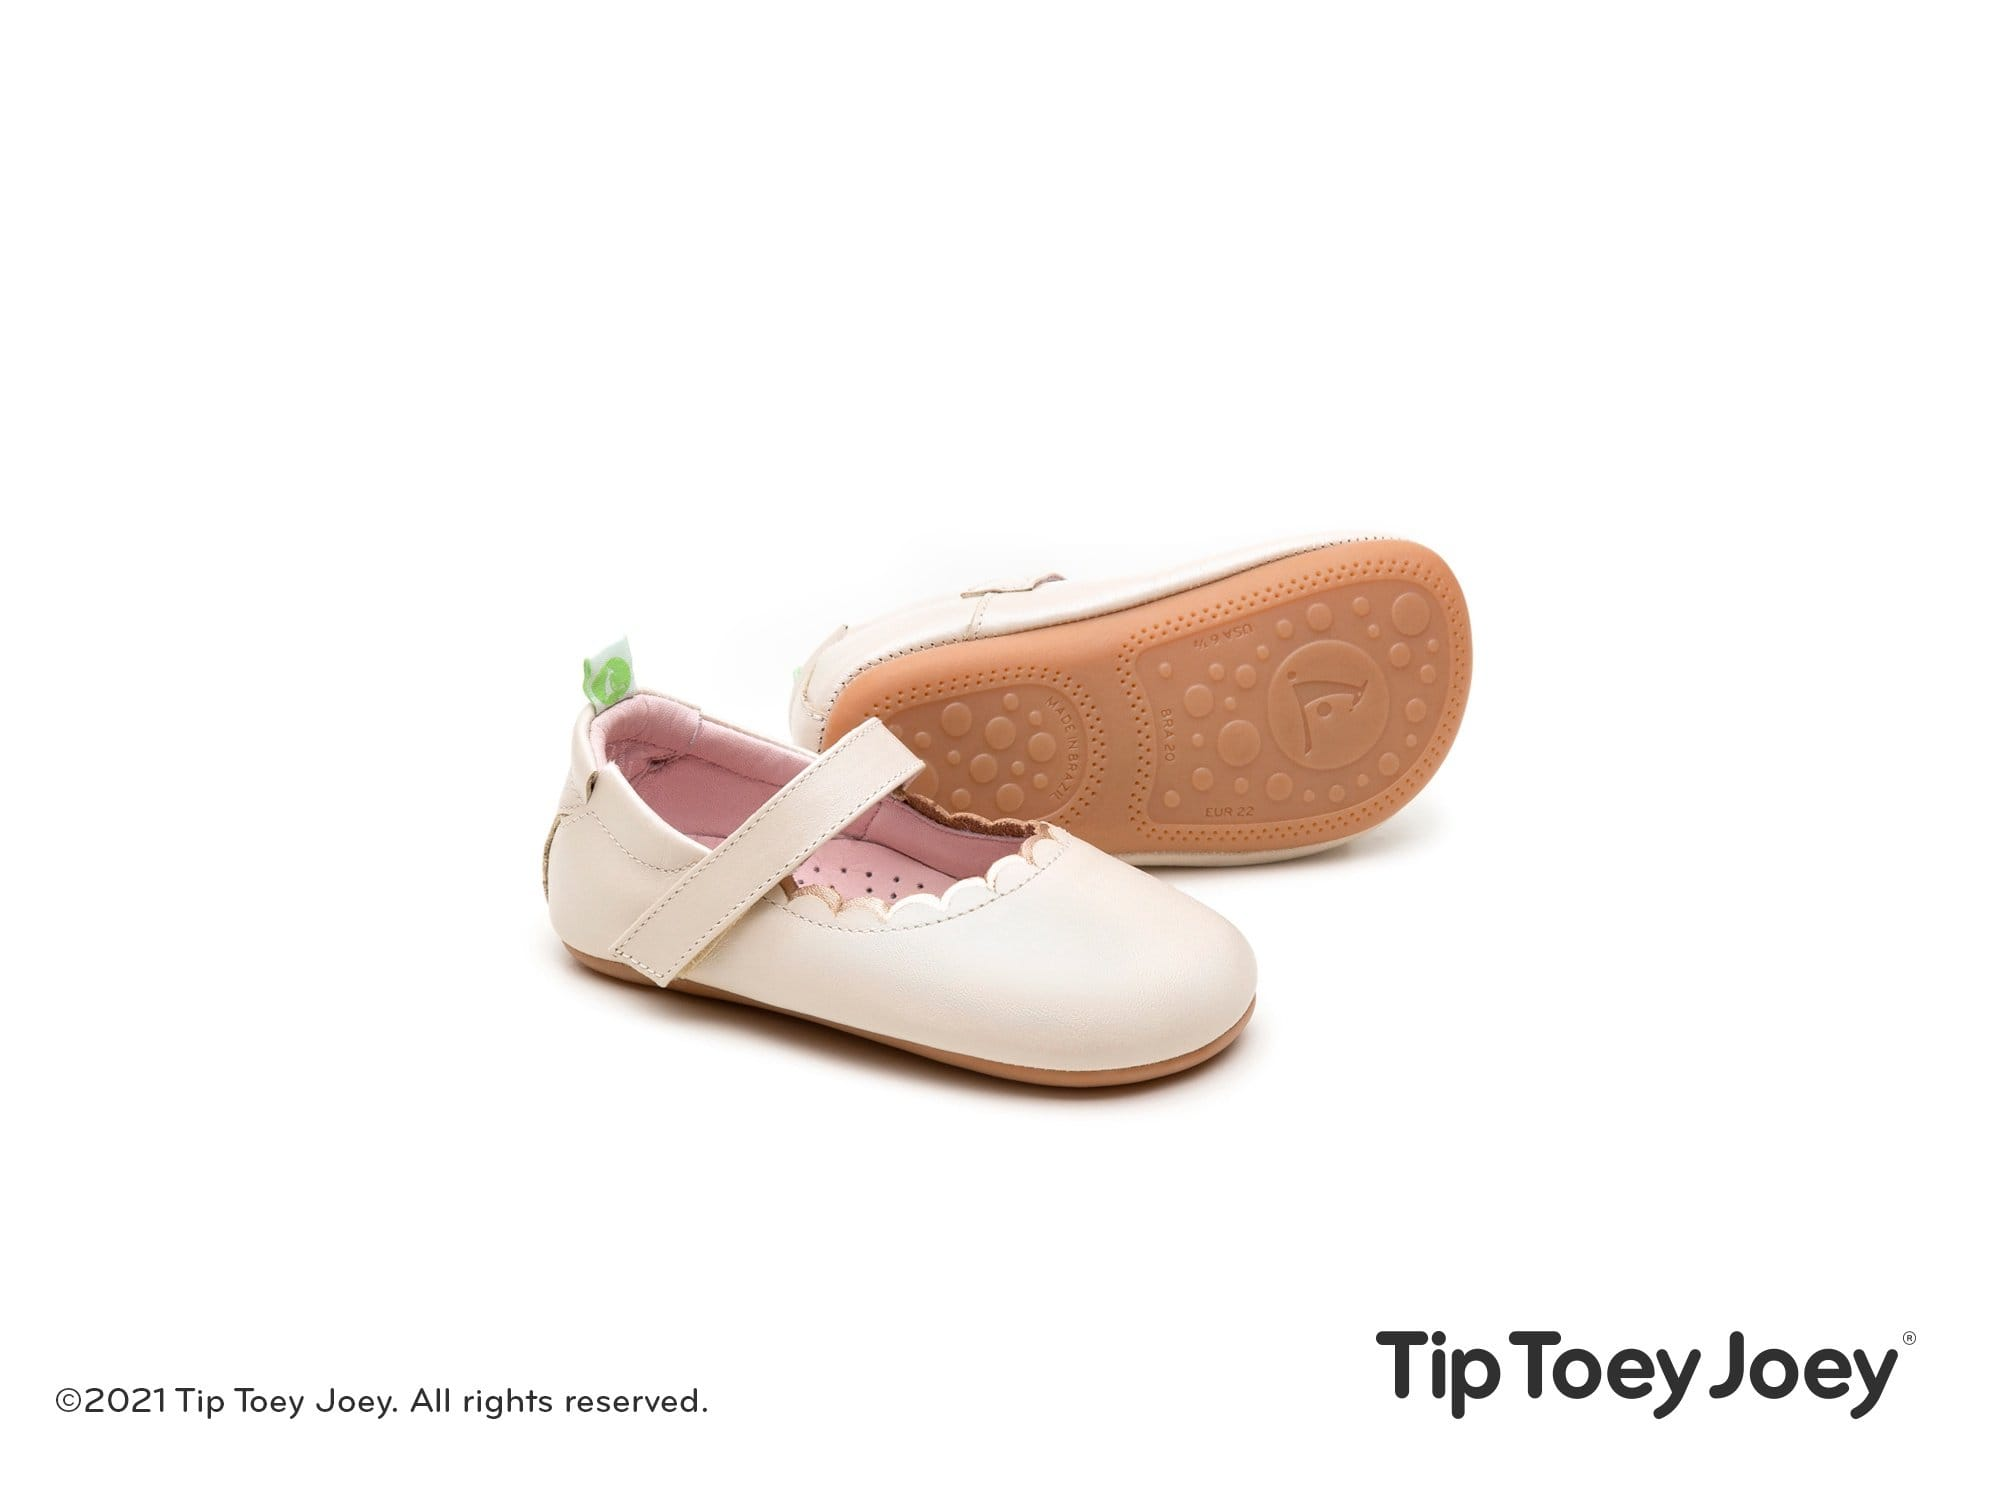 Tip Toey Joey Mary Jane Roundy - Antique White with Metalic Salmon Trip